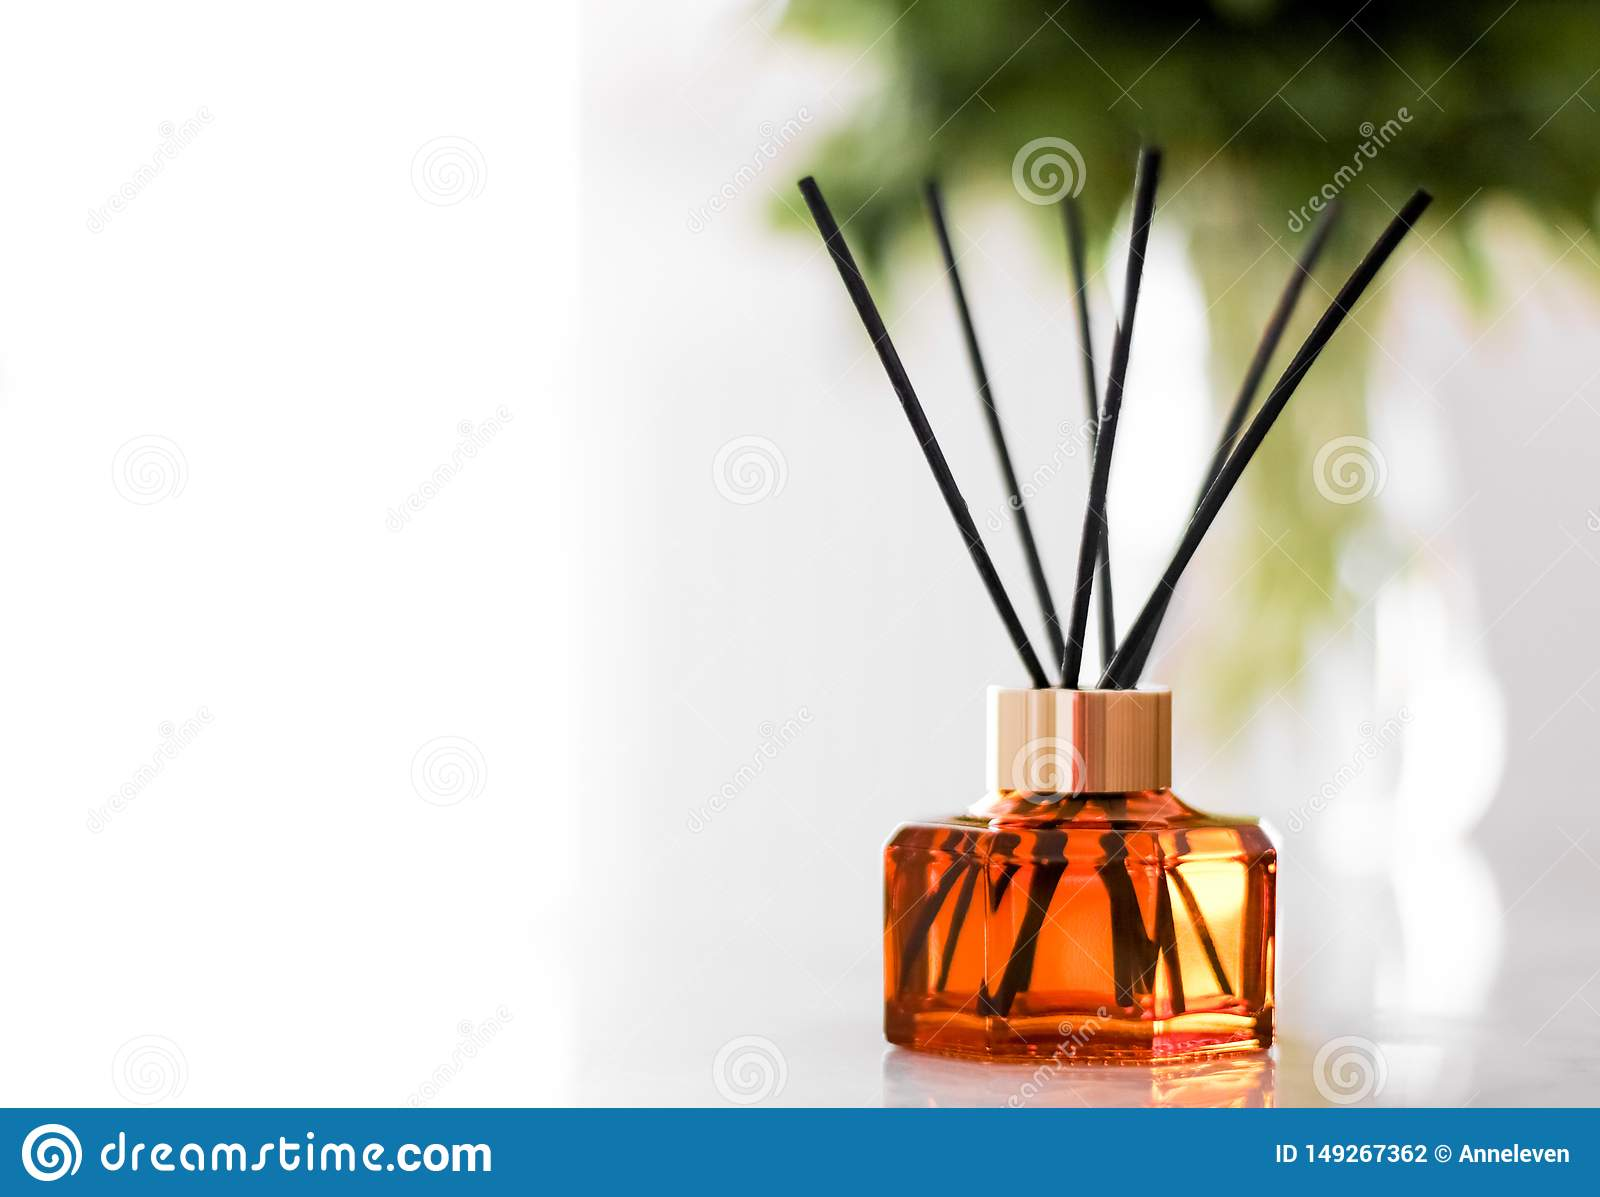 Home Fragrance Bottle European Luxury House Decor And Interior Design Details Stock Photo Image Of Europe Home 149267362